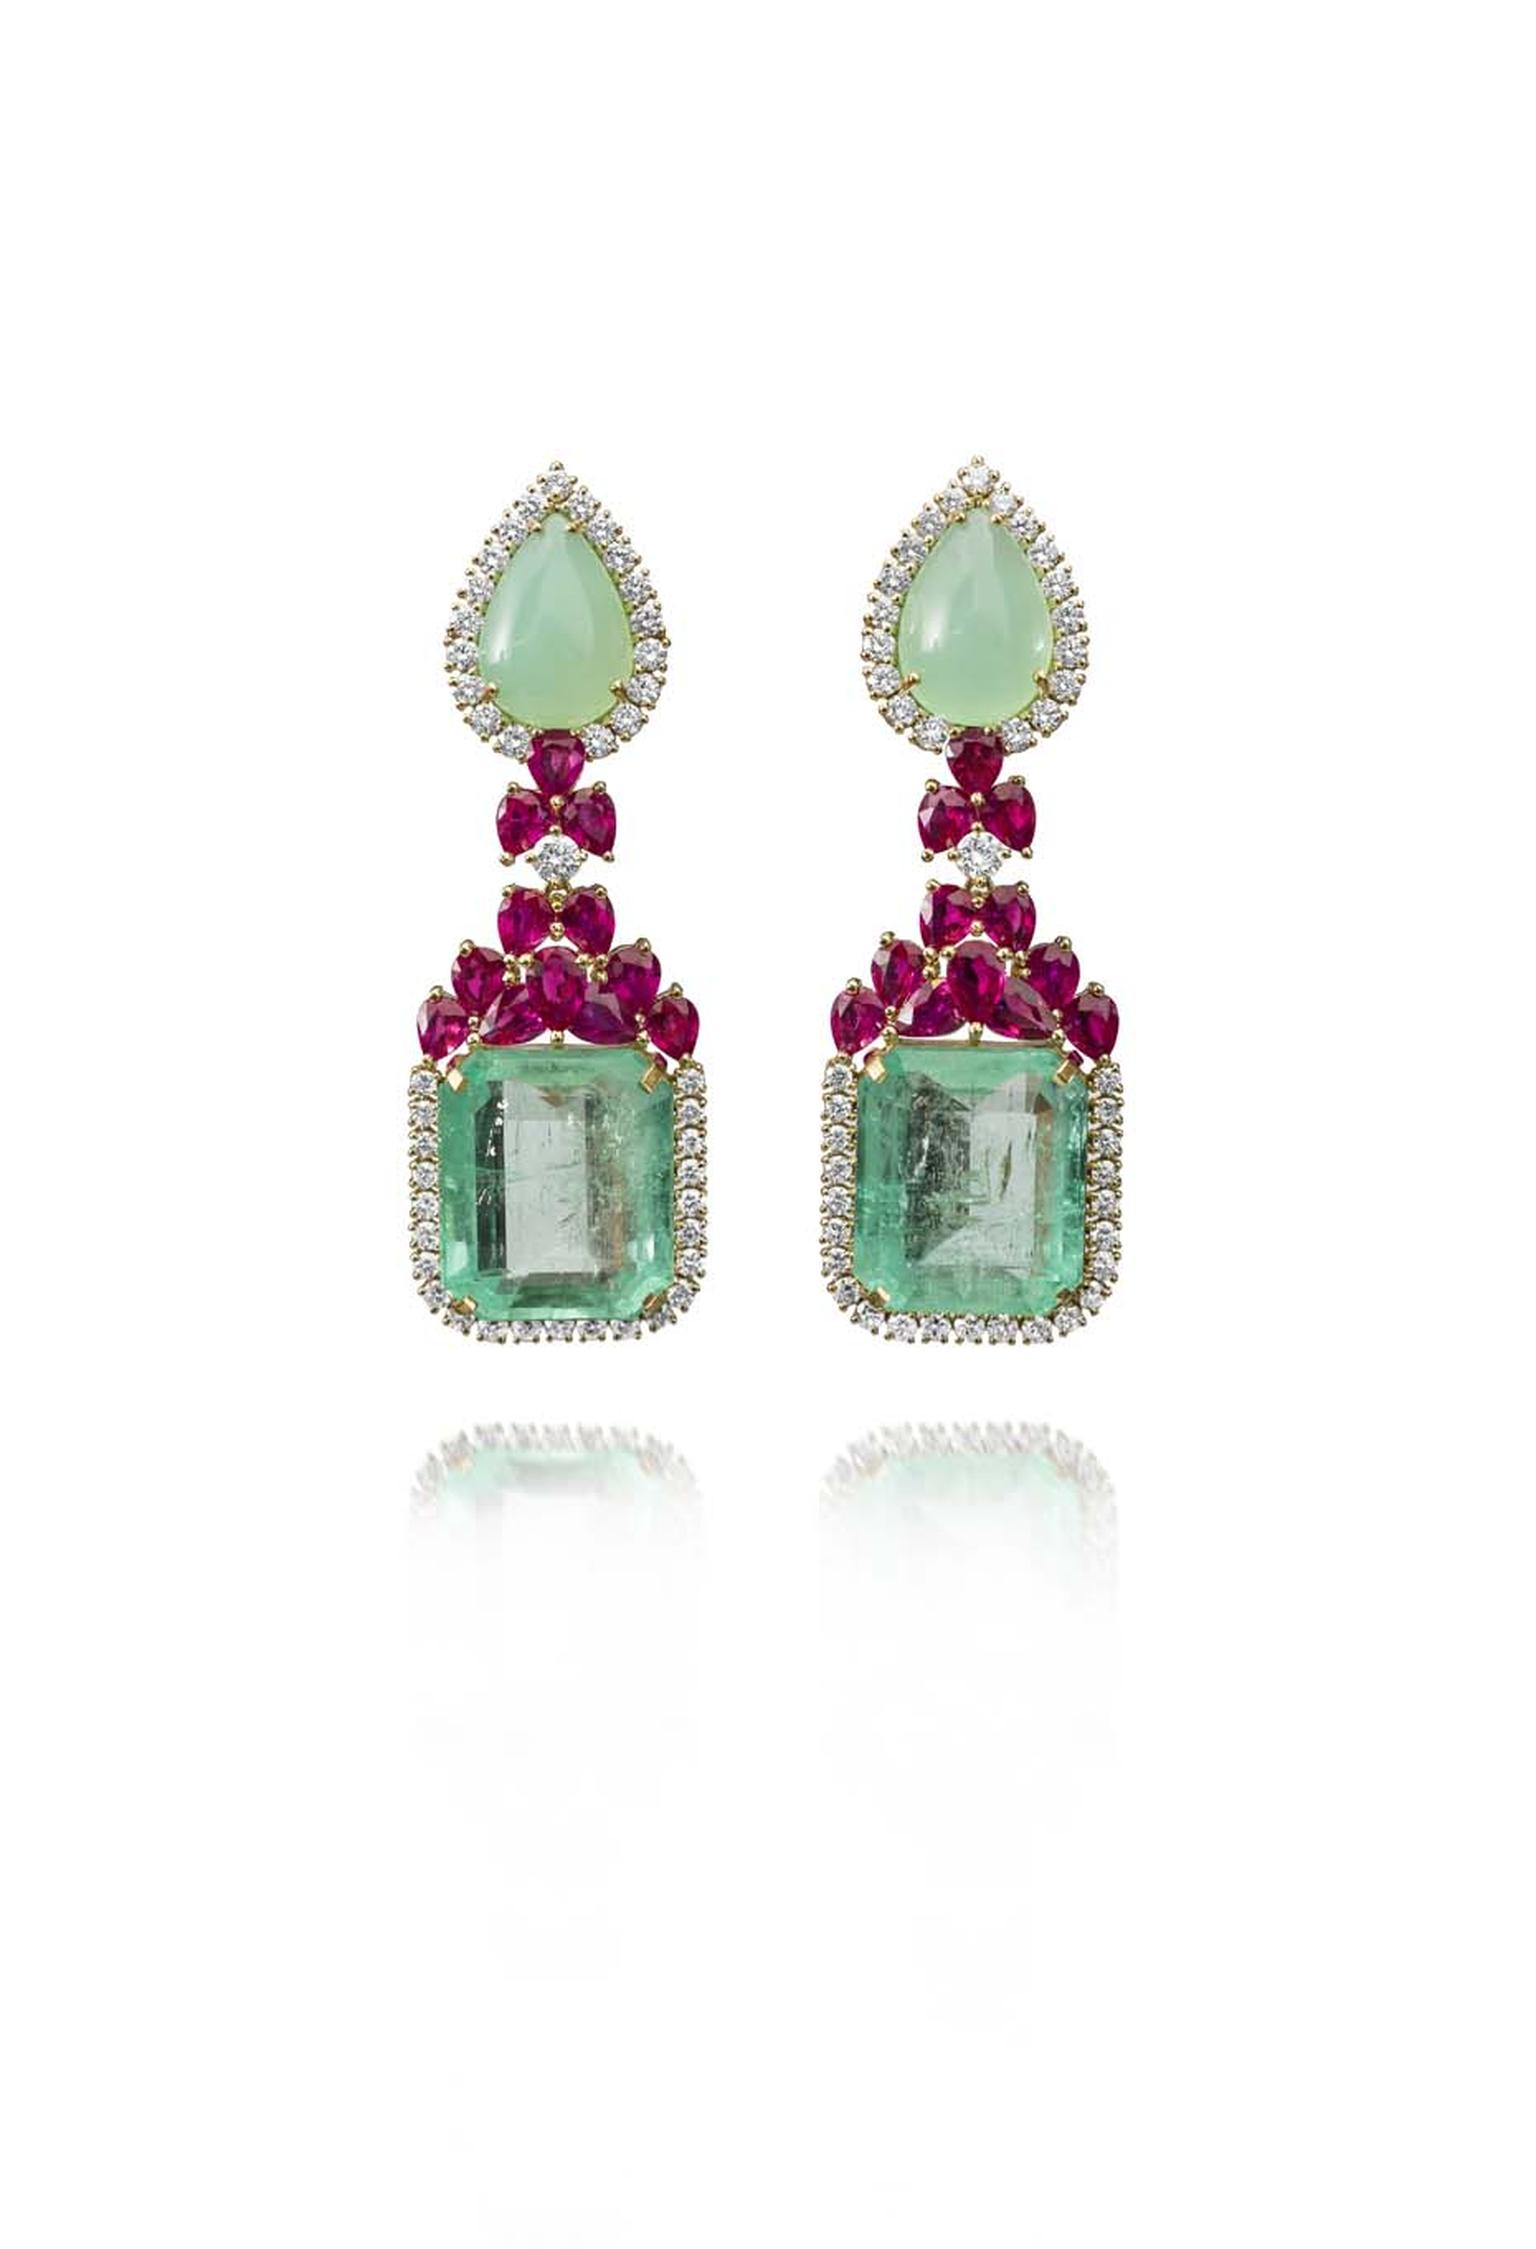 Farah Khan gold earrings featuring diamonds (3.46ct), rubies (9.02ct), chrysoprase (14.22ct) and emeralds (43.97ct).